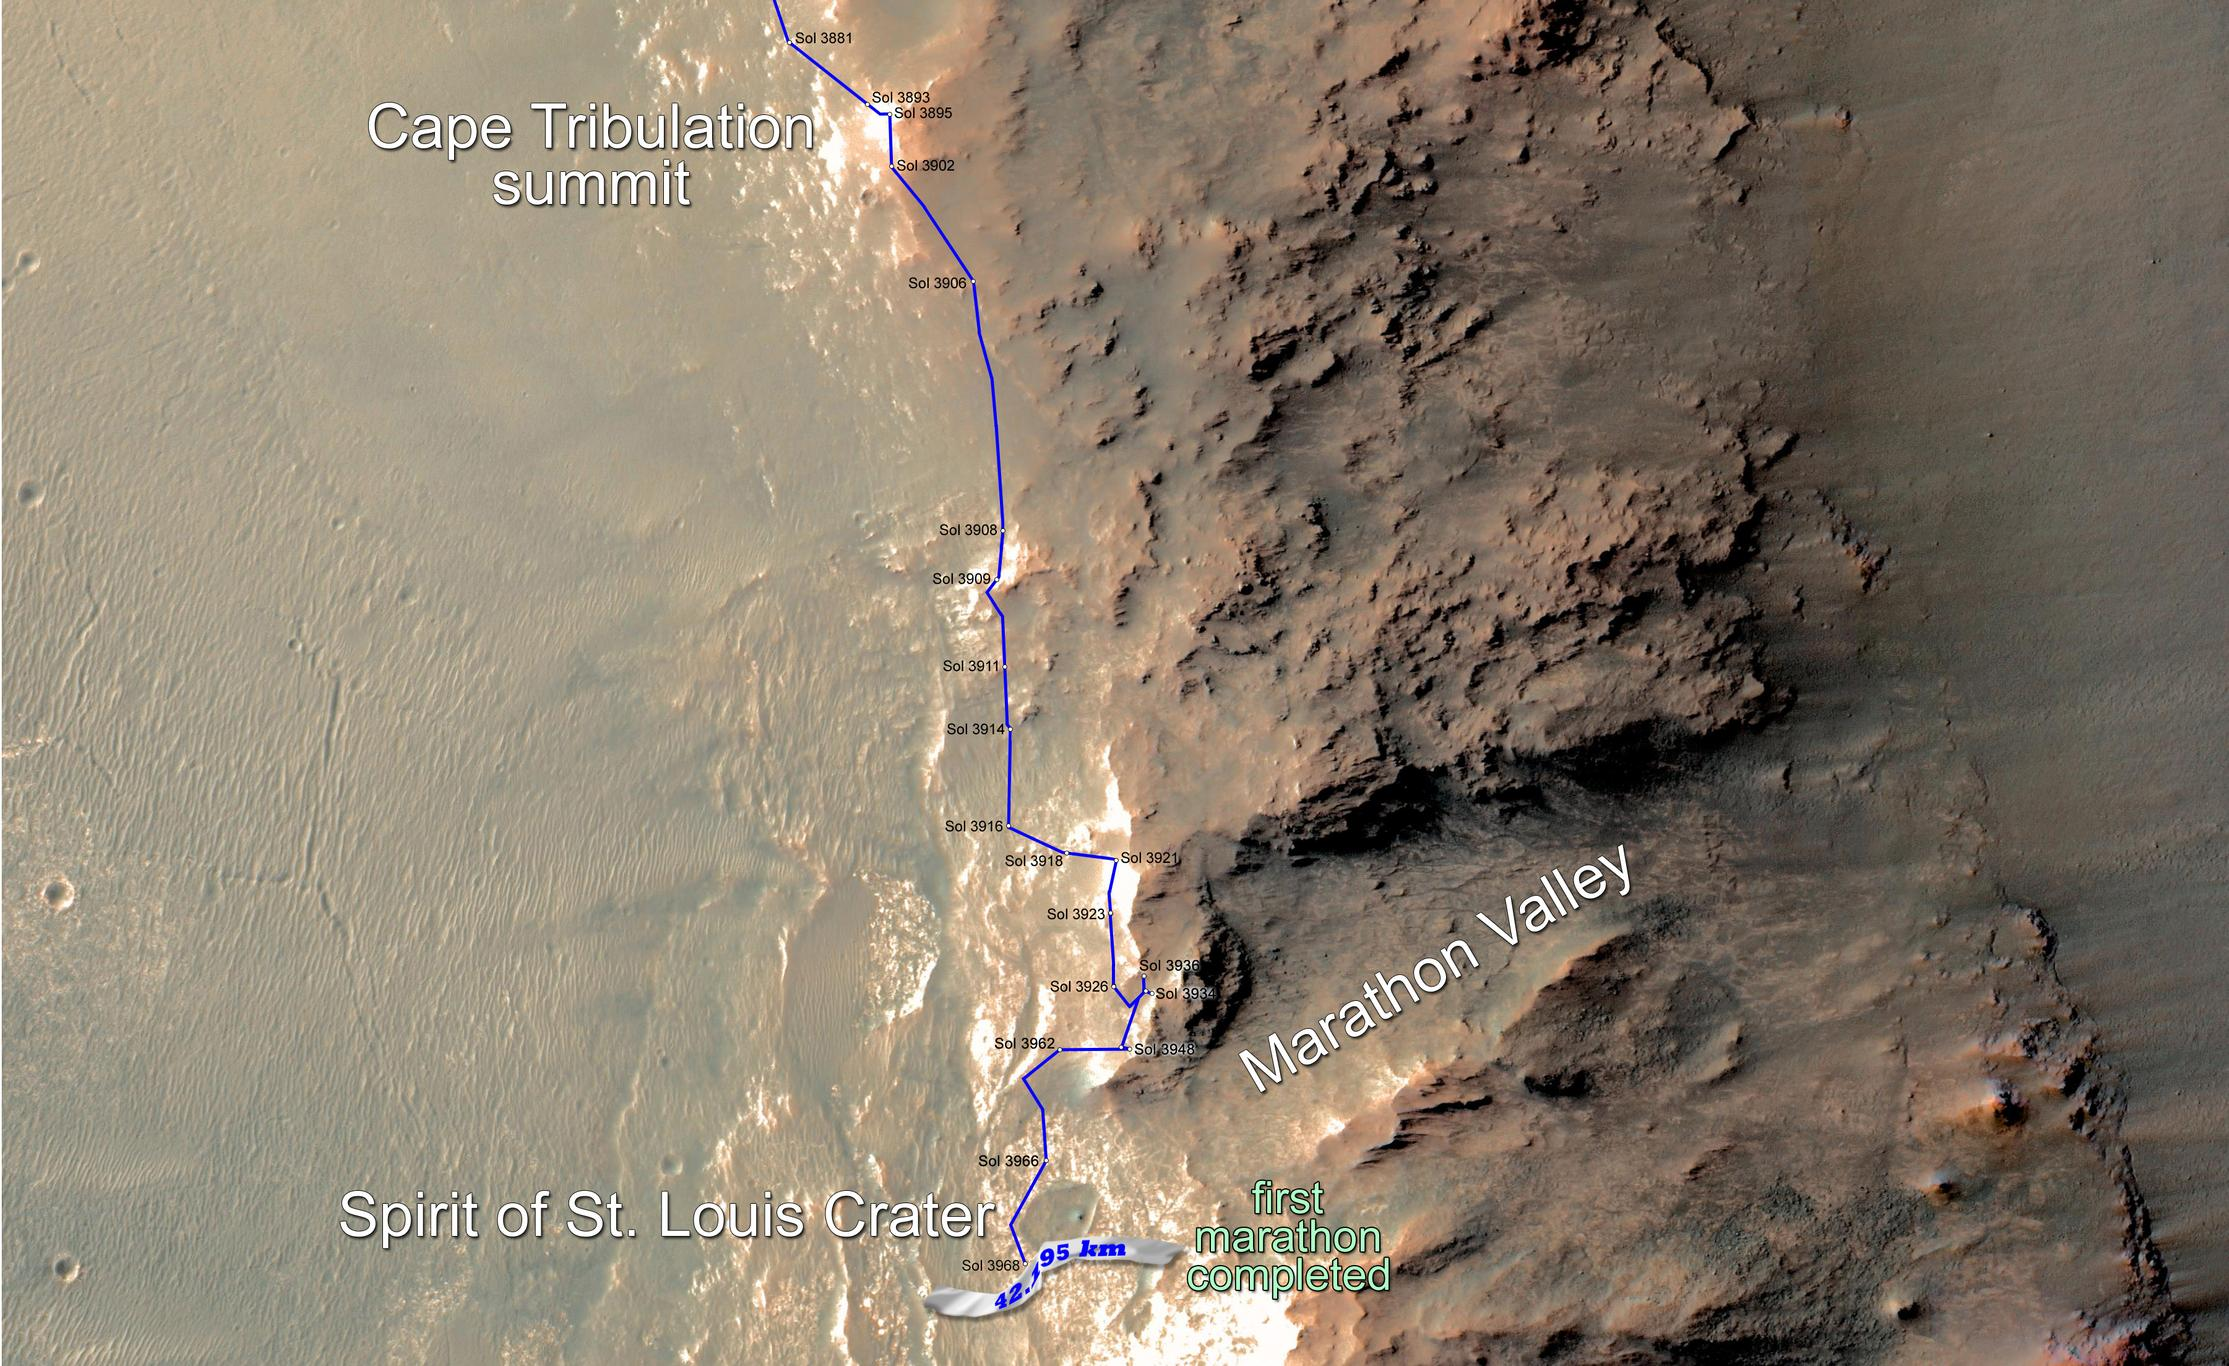 Eleven years and two months after its landing on Mars, the total driving distance of NASA's Opportunity Mars rover surpassed the length of a marathon race: 26.219 miles (42.195 kilometers). This map shows the rover's path from late December 2014 until it passed marathon distance on March 24, 2015.